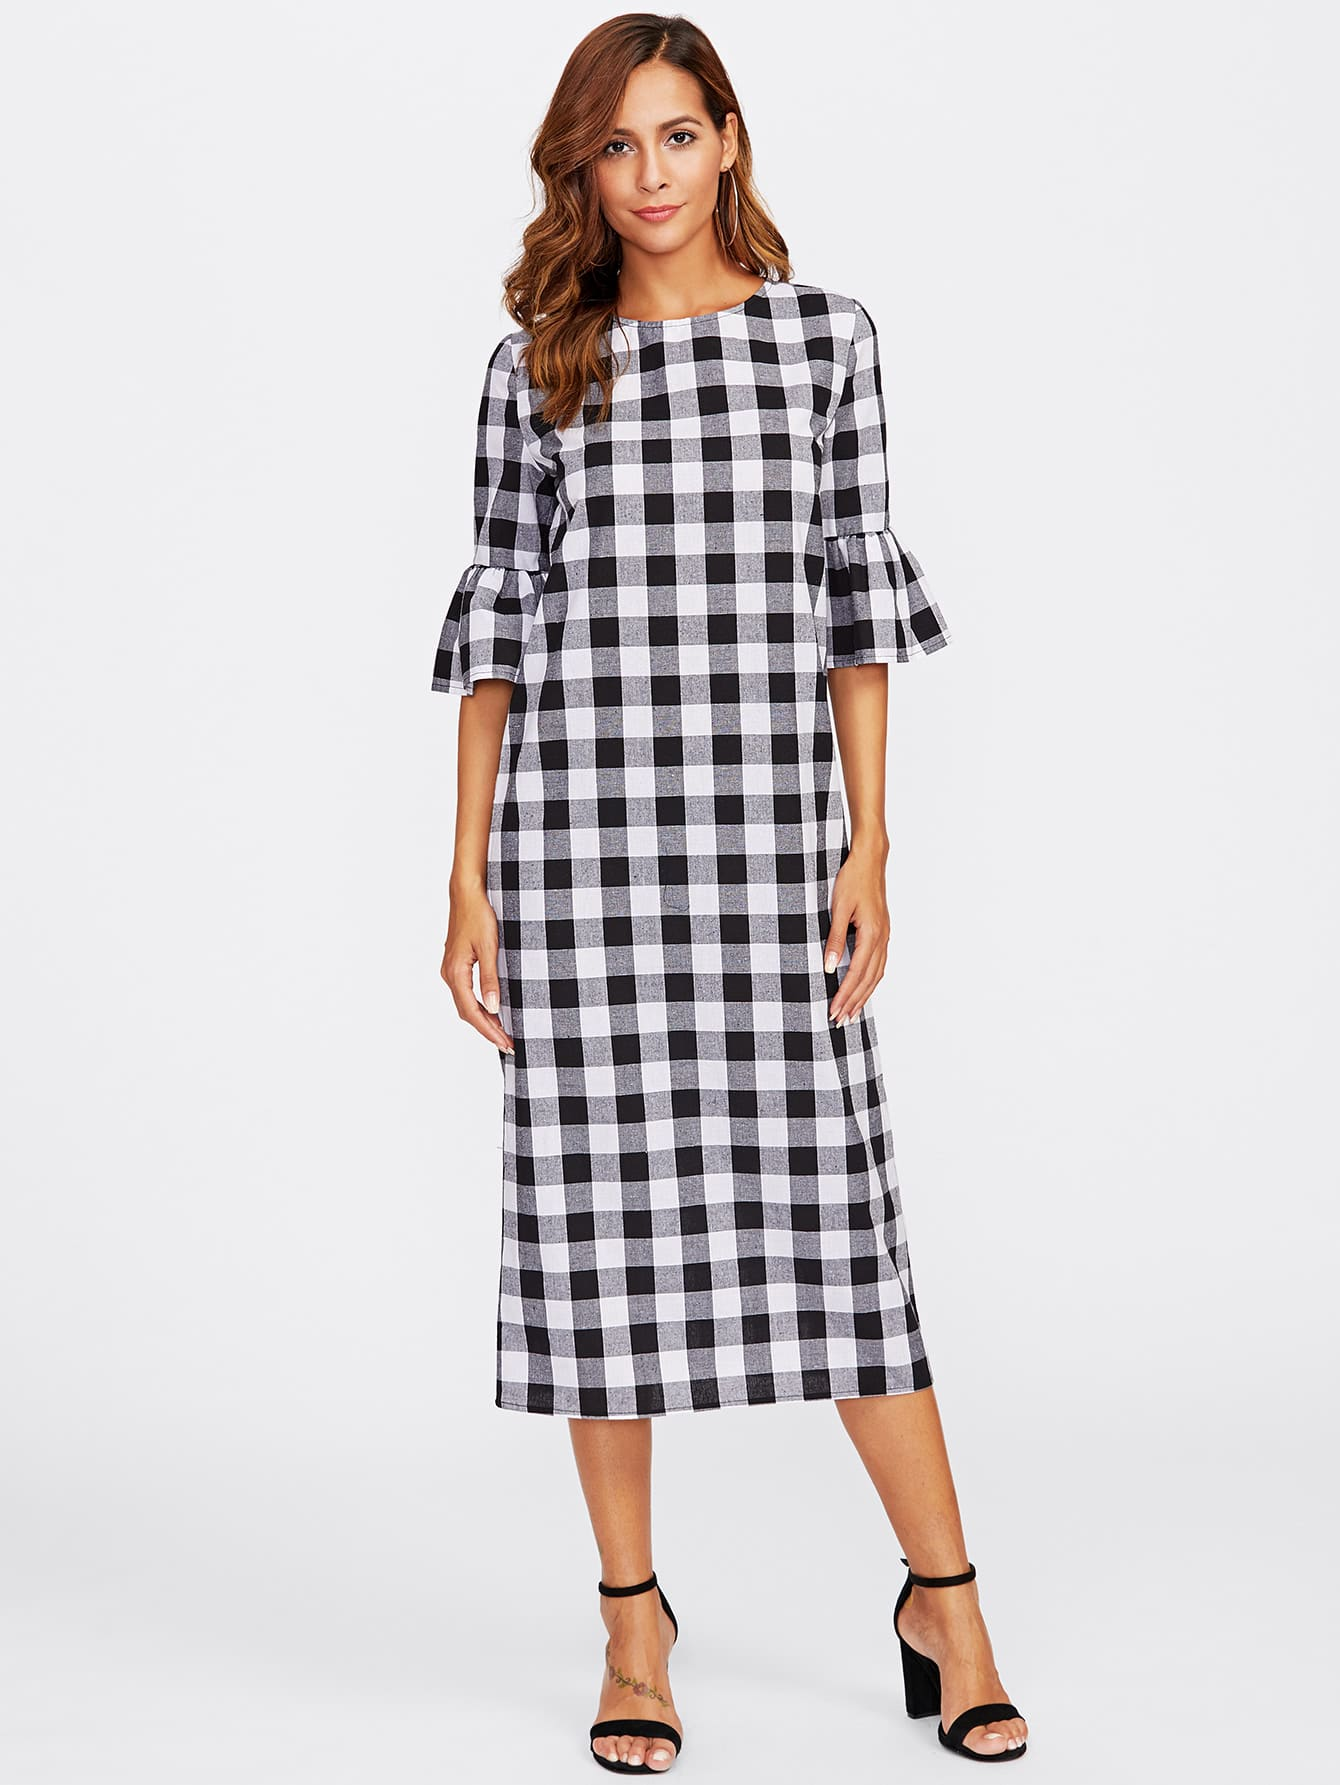 Bell Sleeve Buttoned Keyhole Back Gingham Dress foliage print buttoned keyhole back tank dress page 8